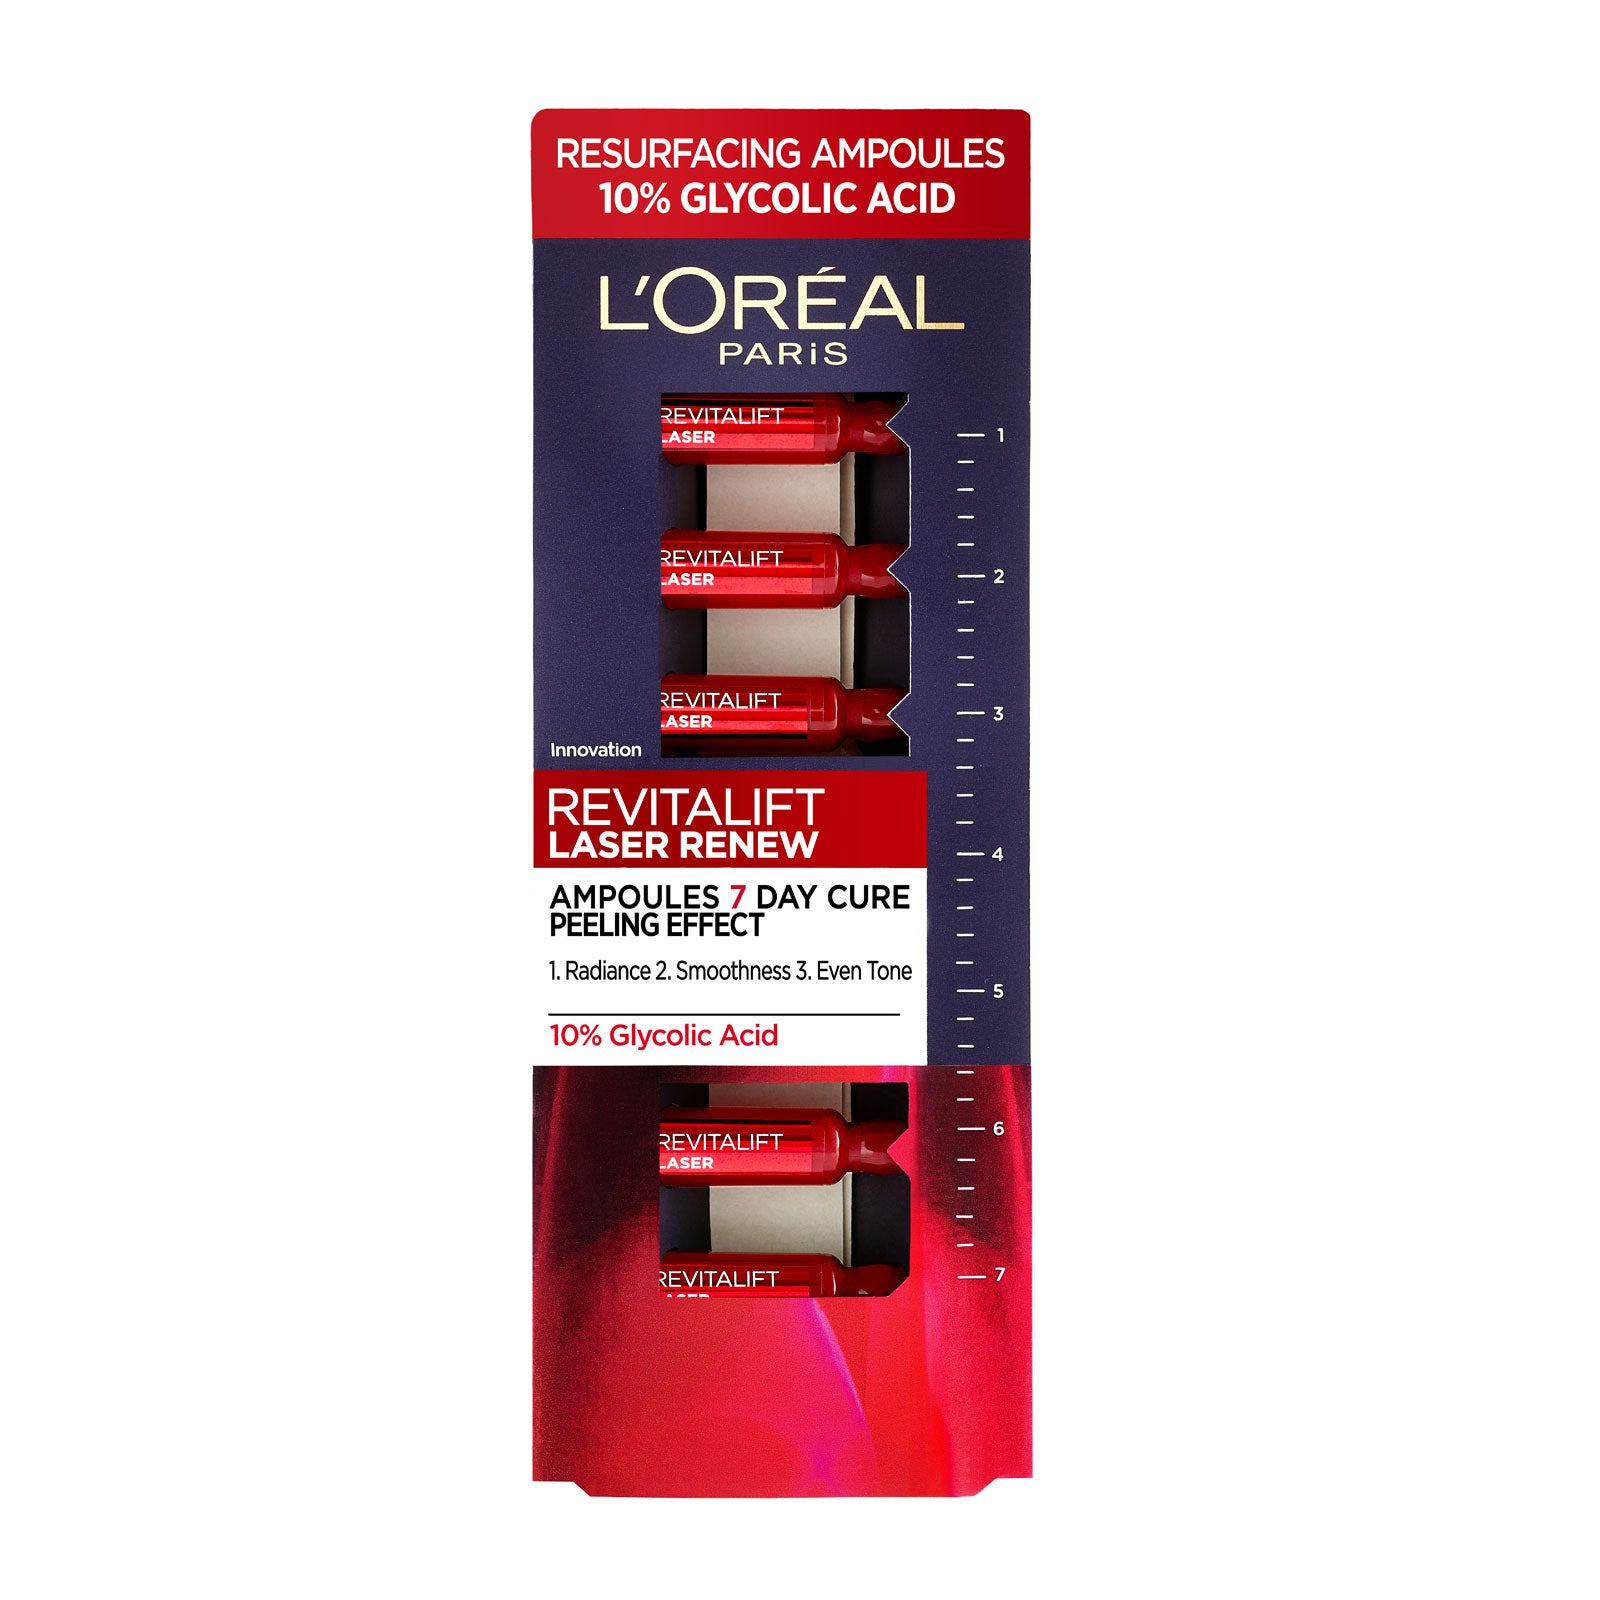 L'Oreal Paris Revitalift Laser 10% Glycolic Acid Peel Ampoules 7 x 1ml